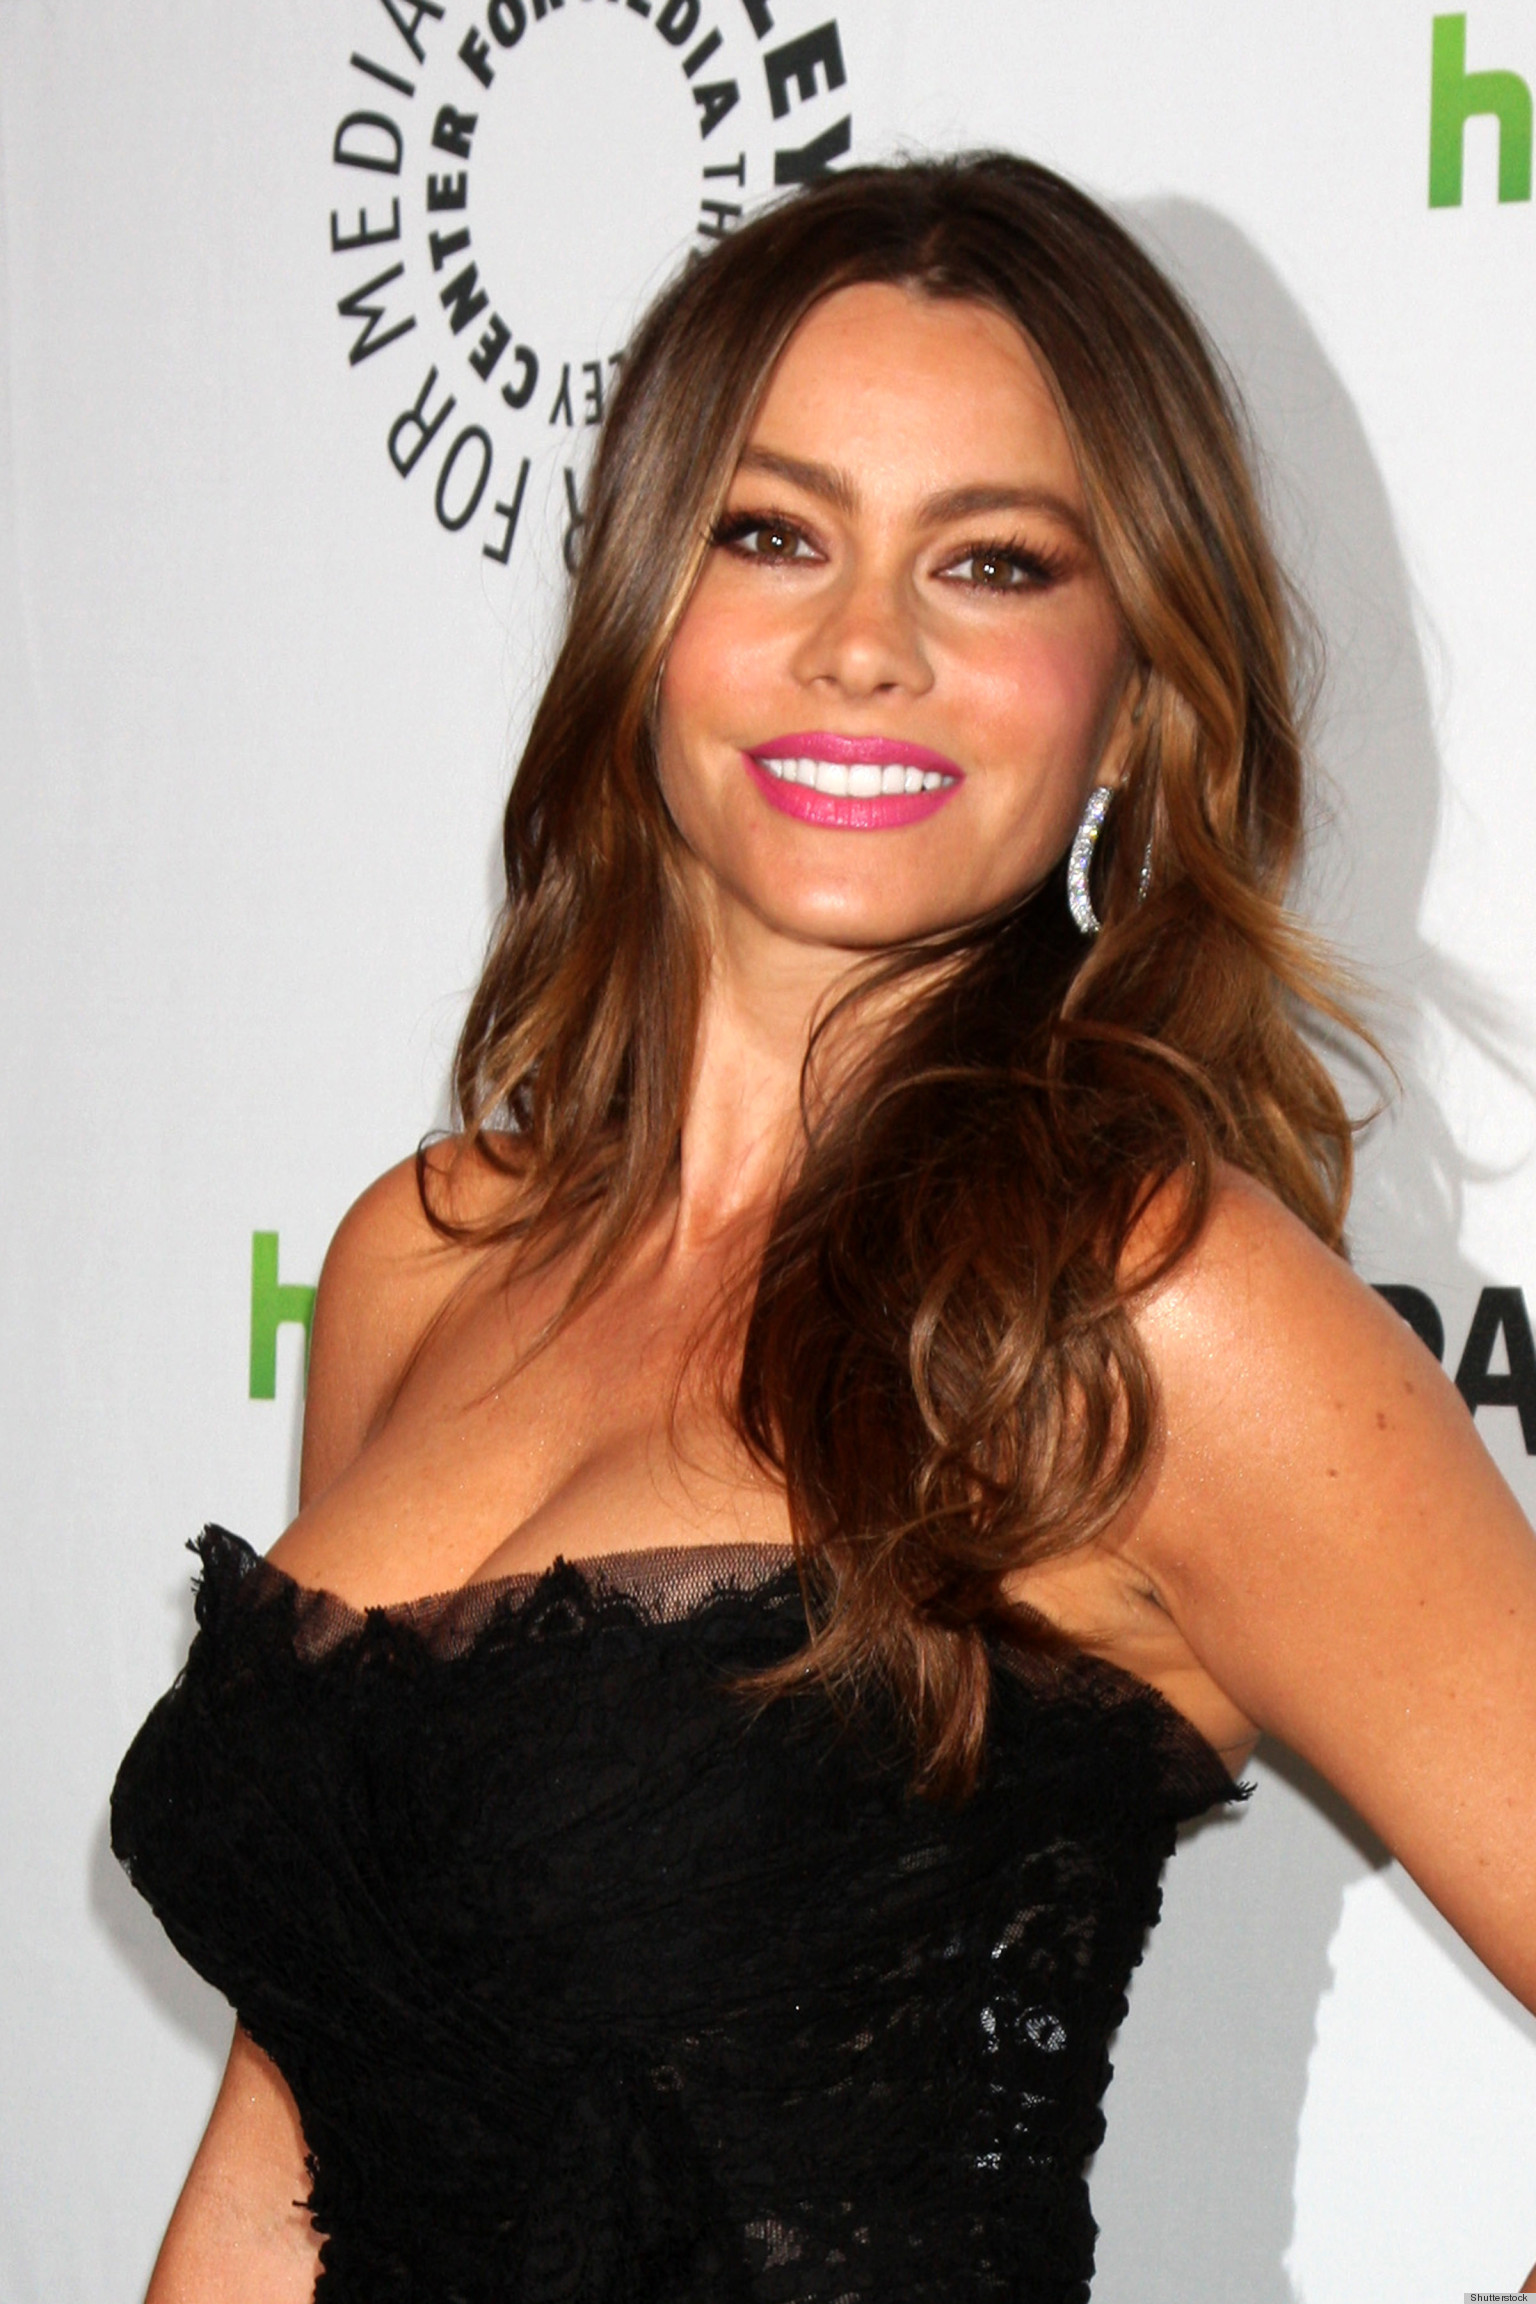 Sofia Vergara Rooms To Go n 2951279 on oscar party furniture